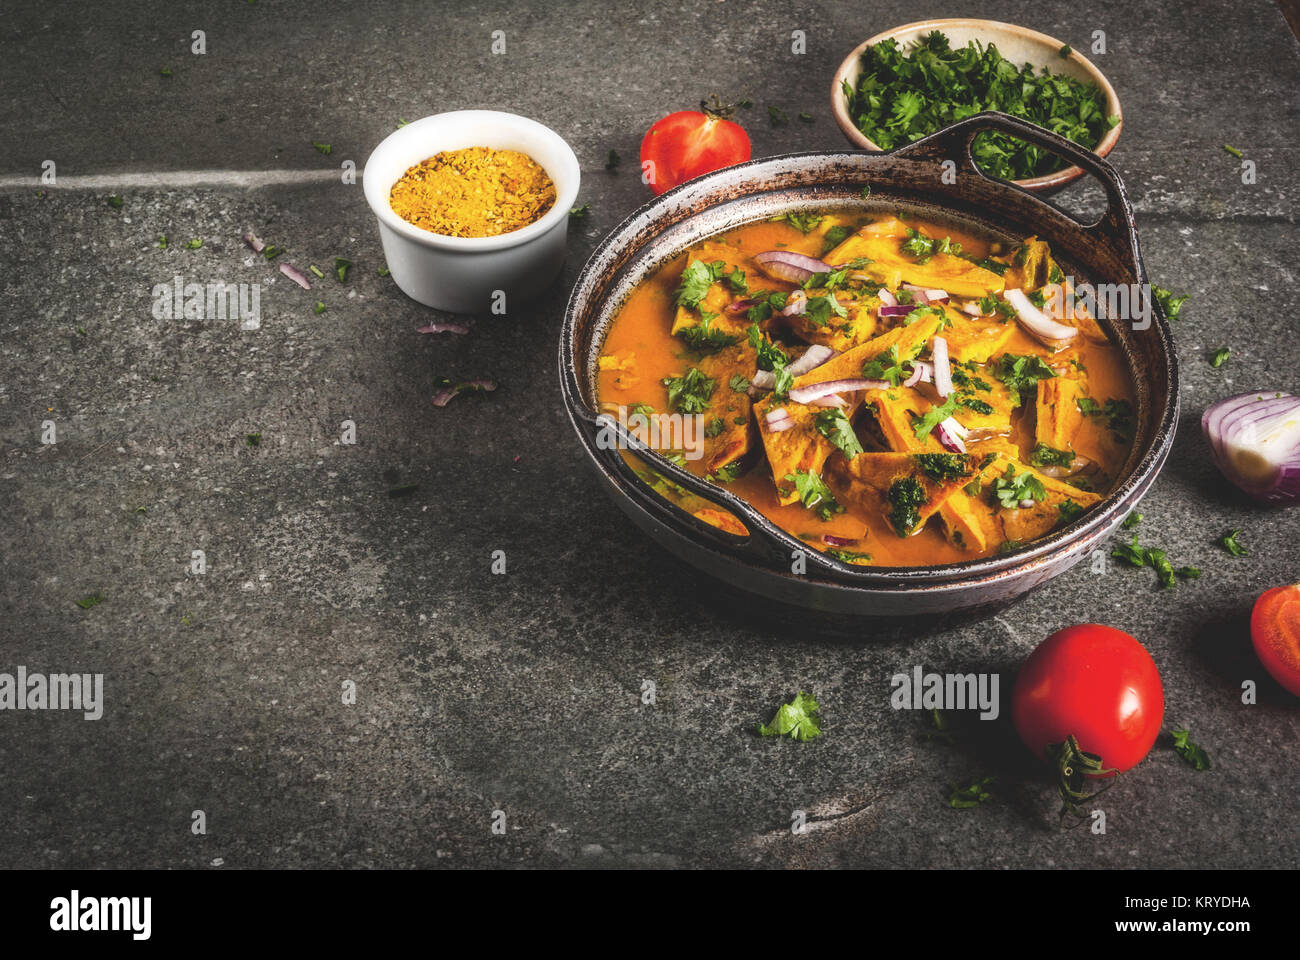 Indian food recipes, Indian Omelet Masala Egg Curry, with fresh vegetables - tomato, hot chili pepper, parsley dark - Stock Image